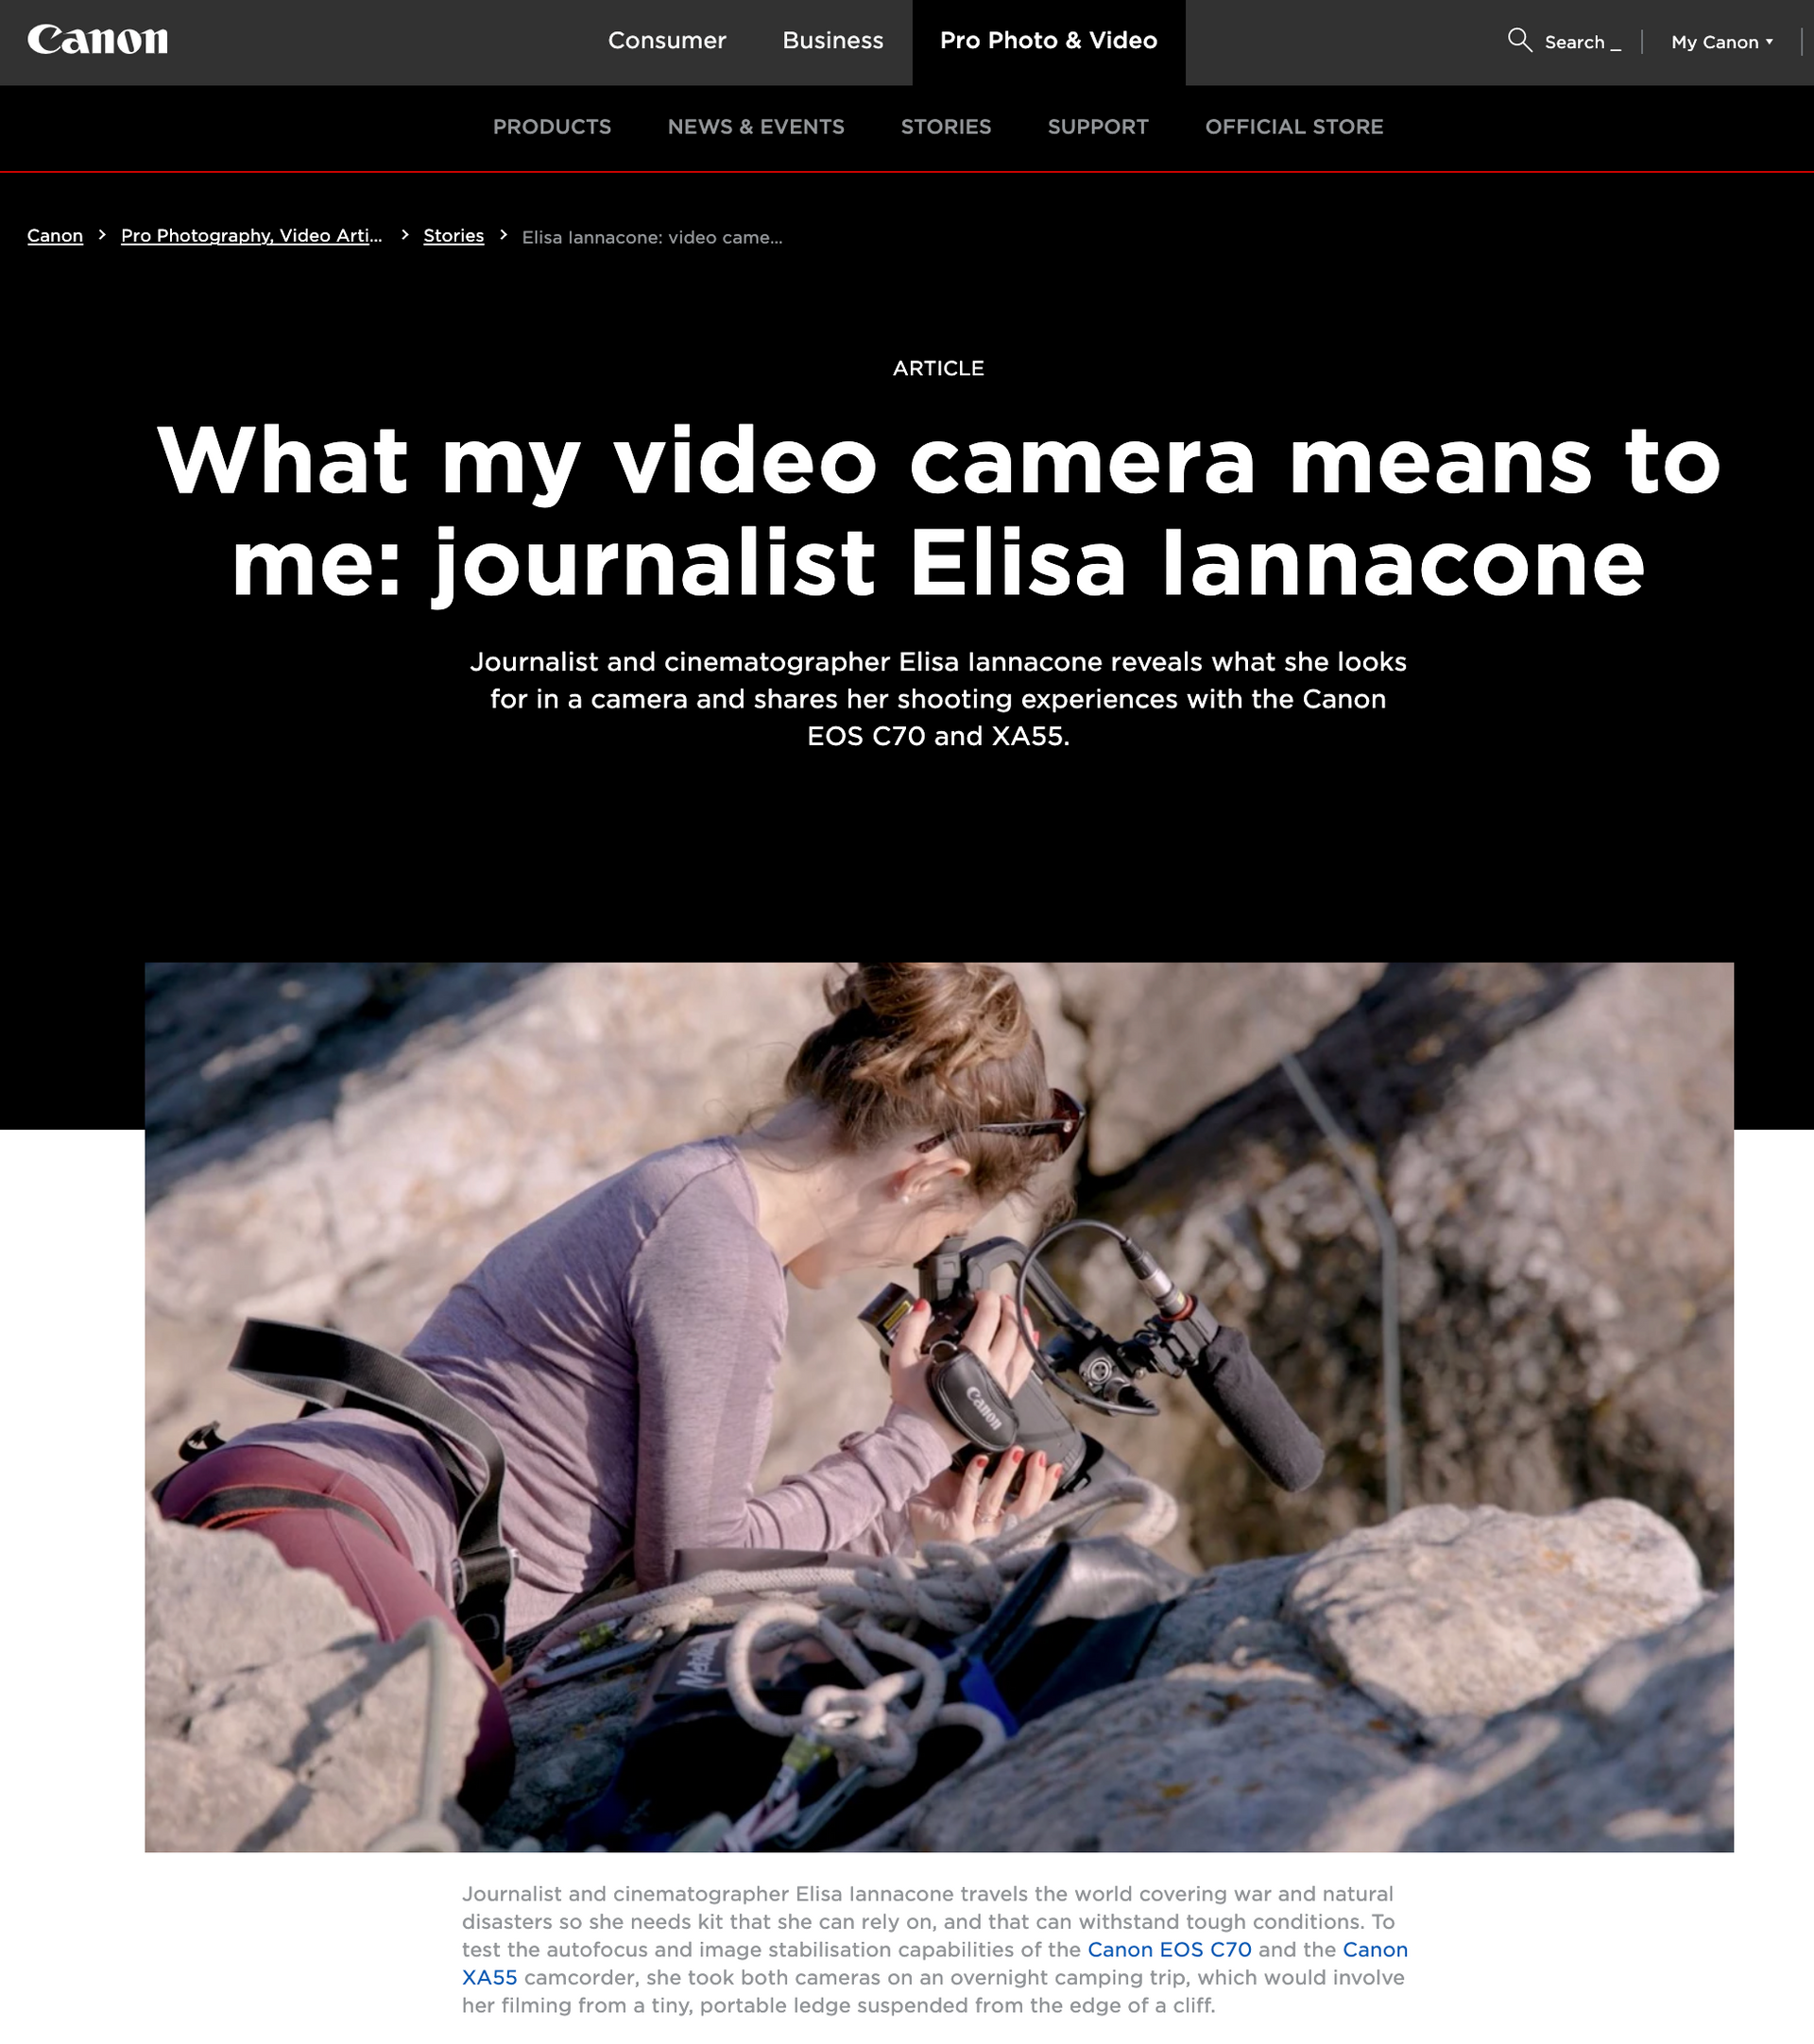 CANON Journalism Review